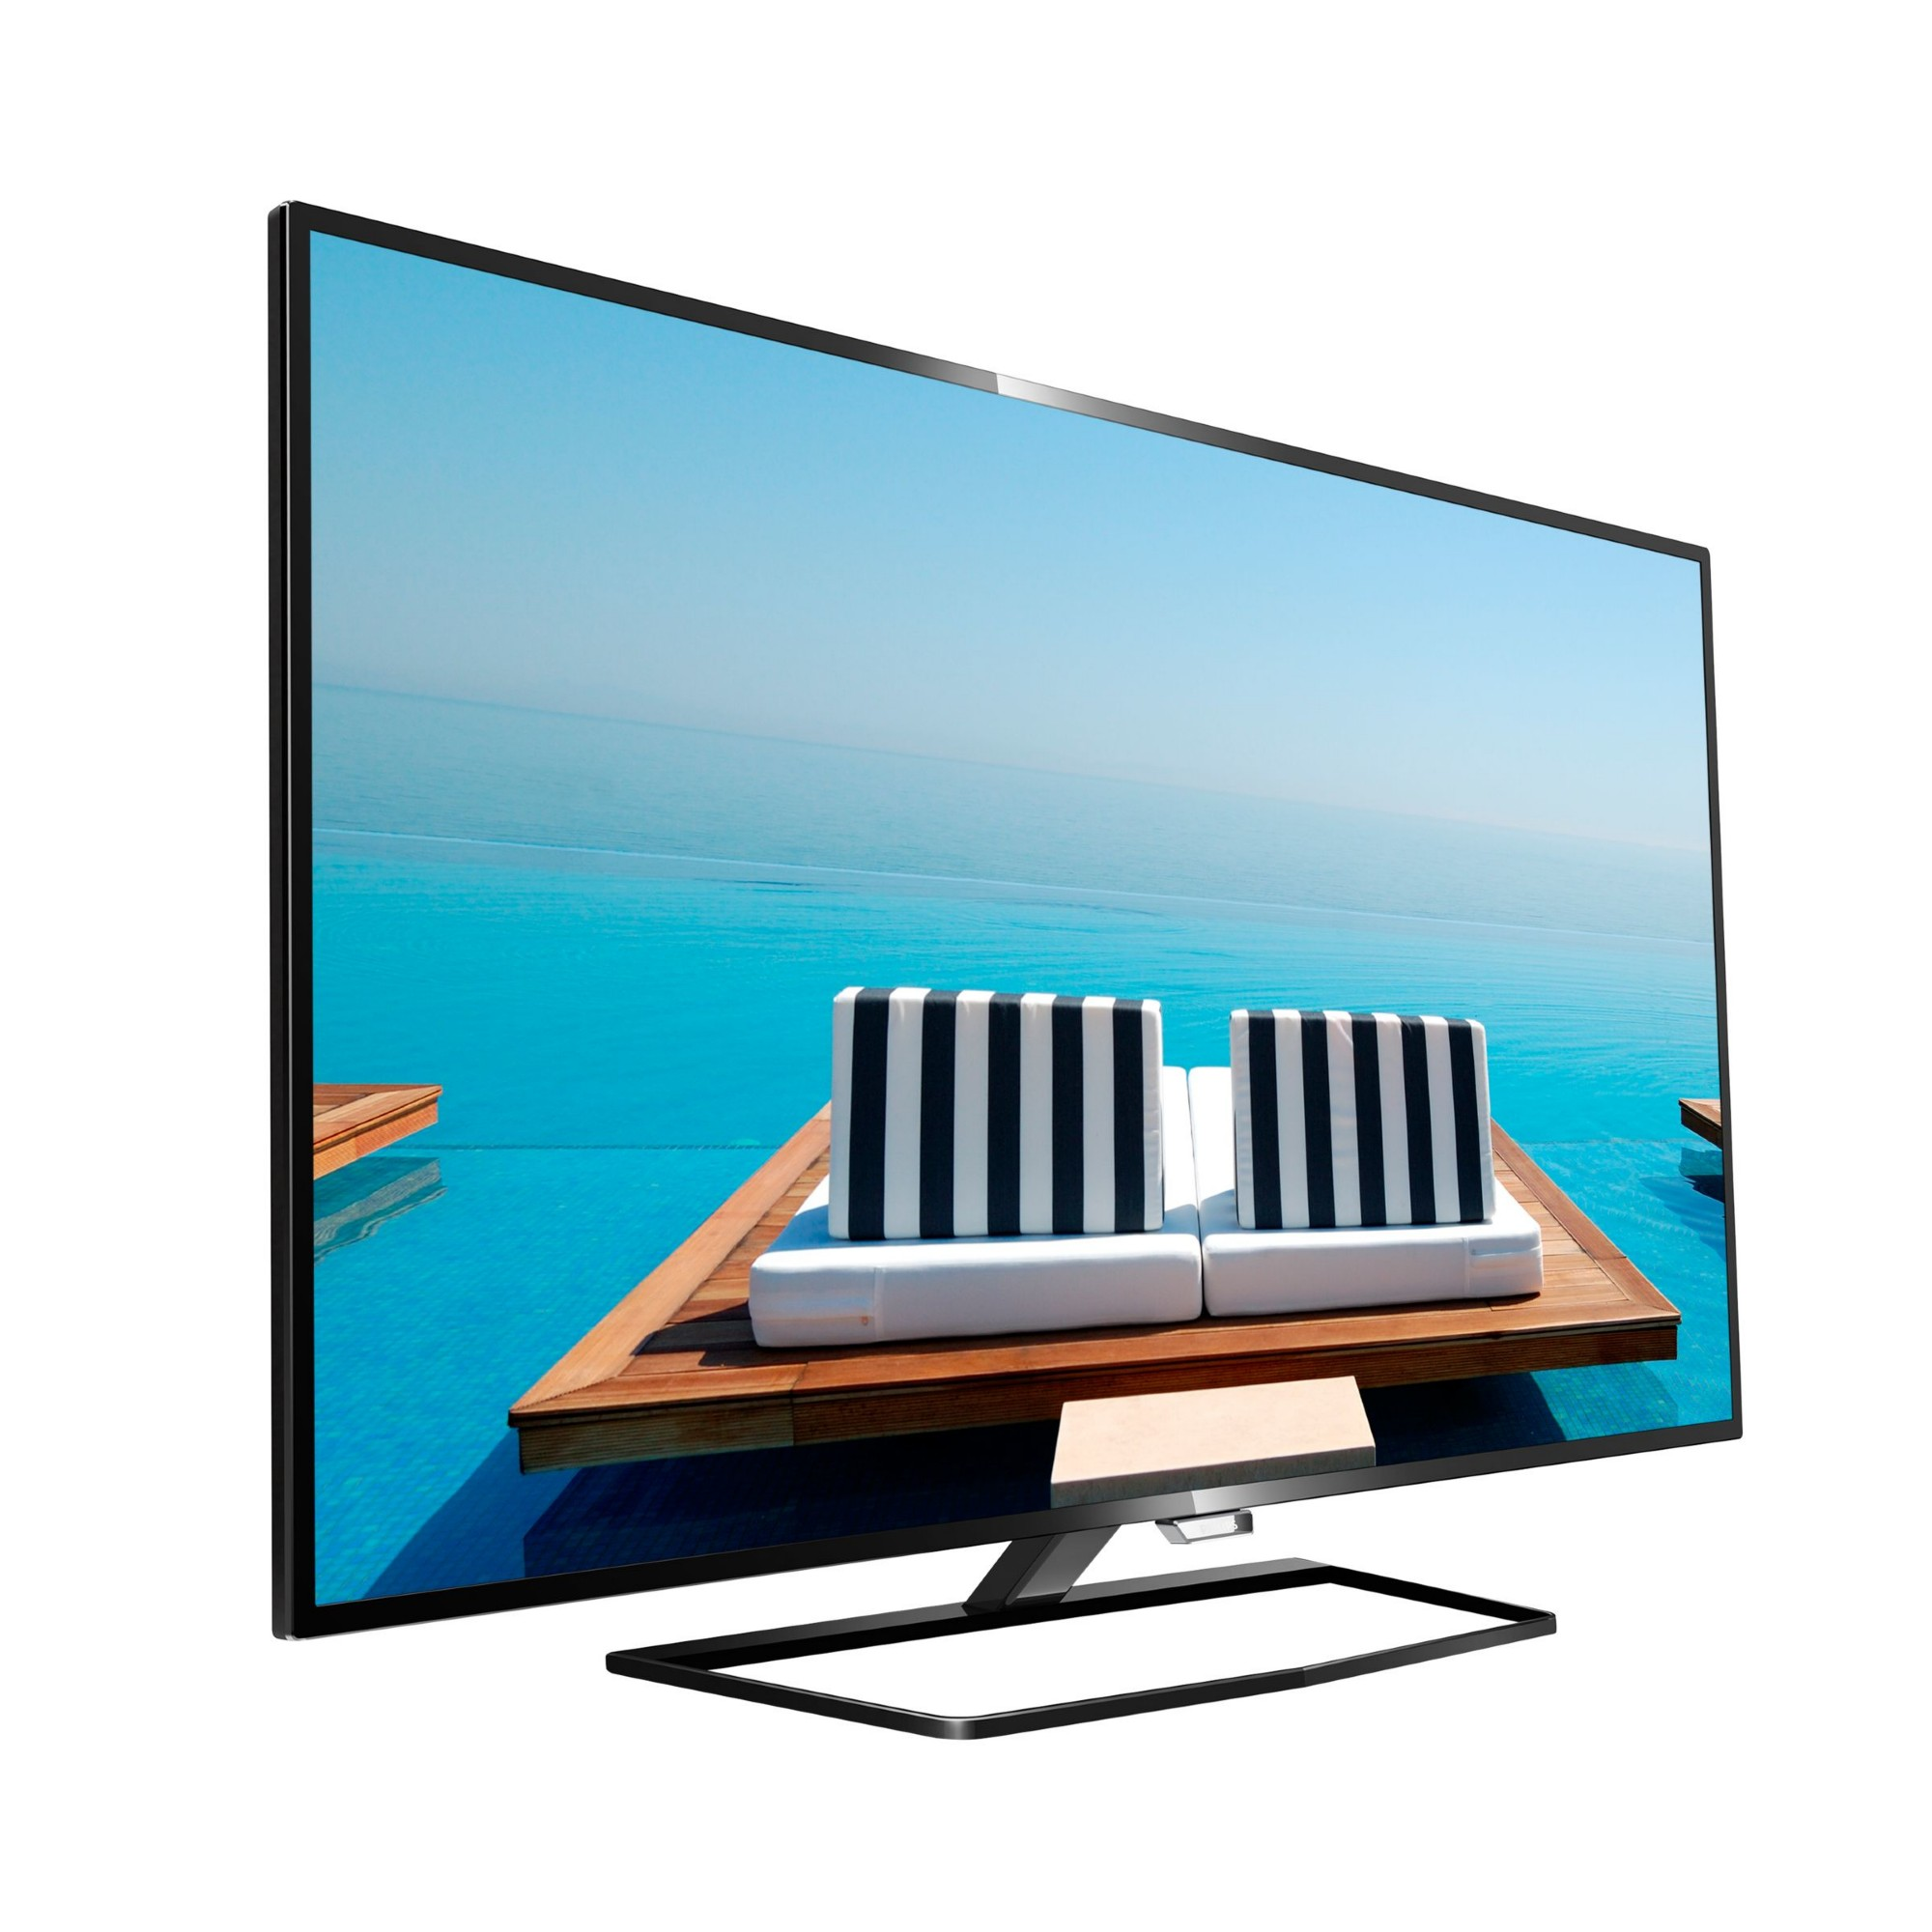 Philips Professional LED TV 32HFL5010T/12